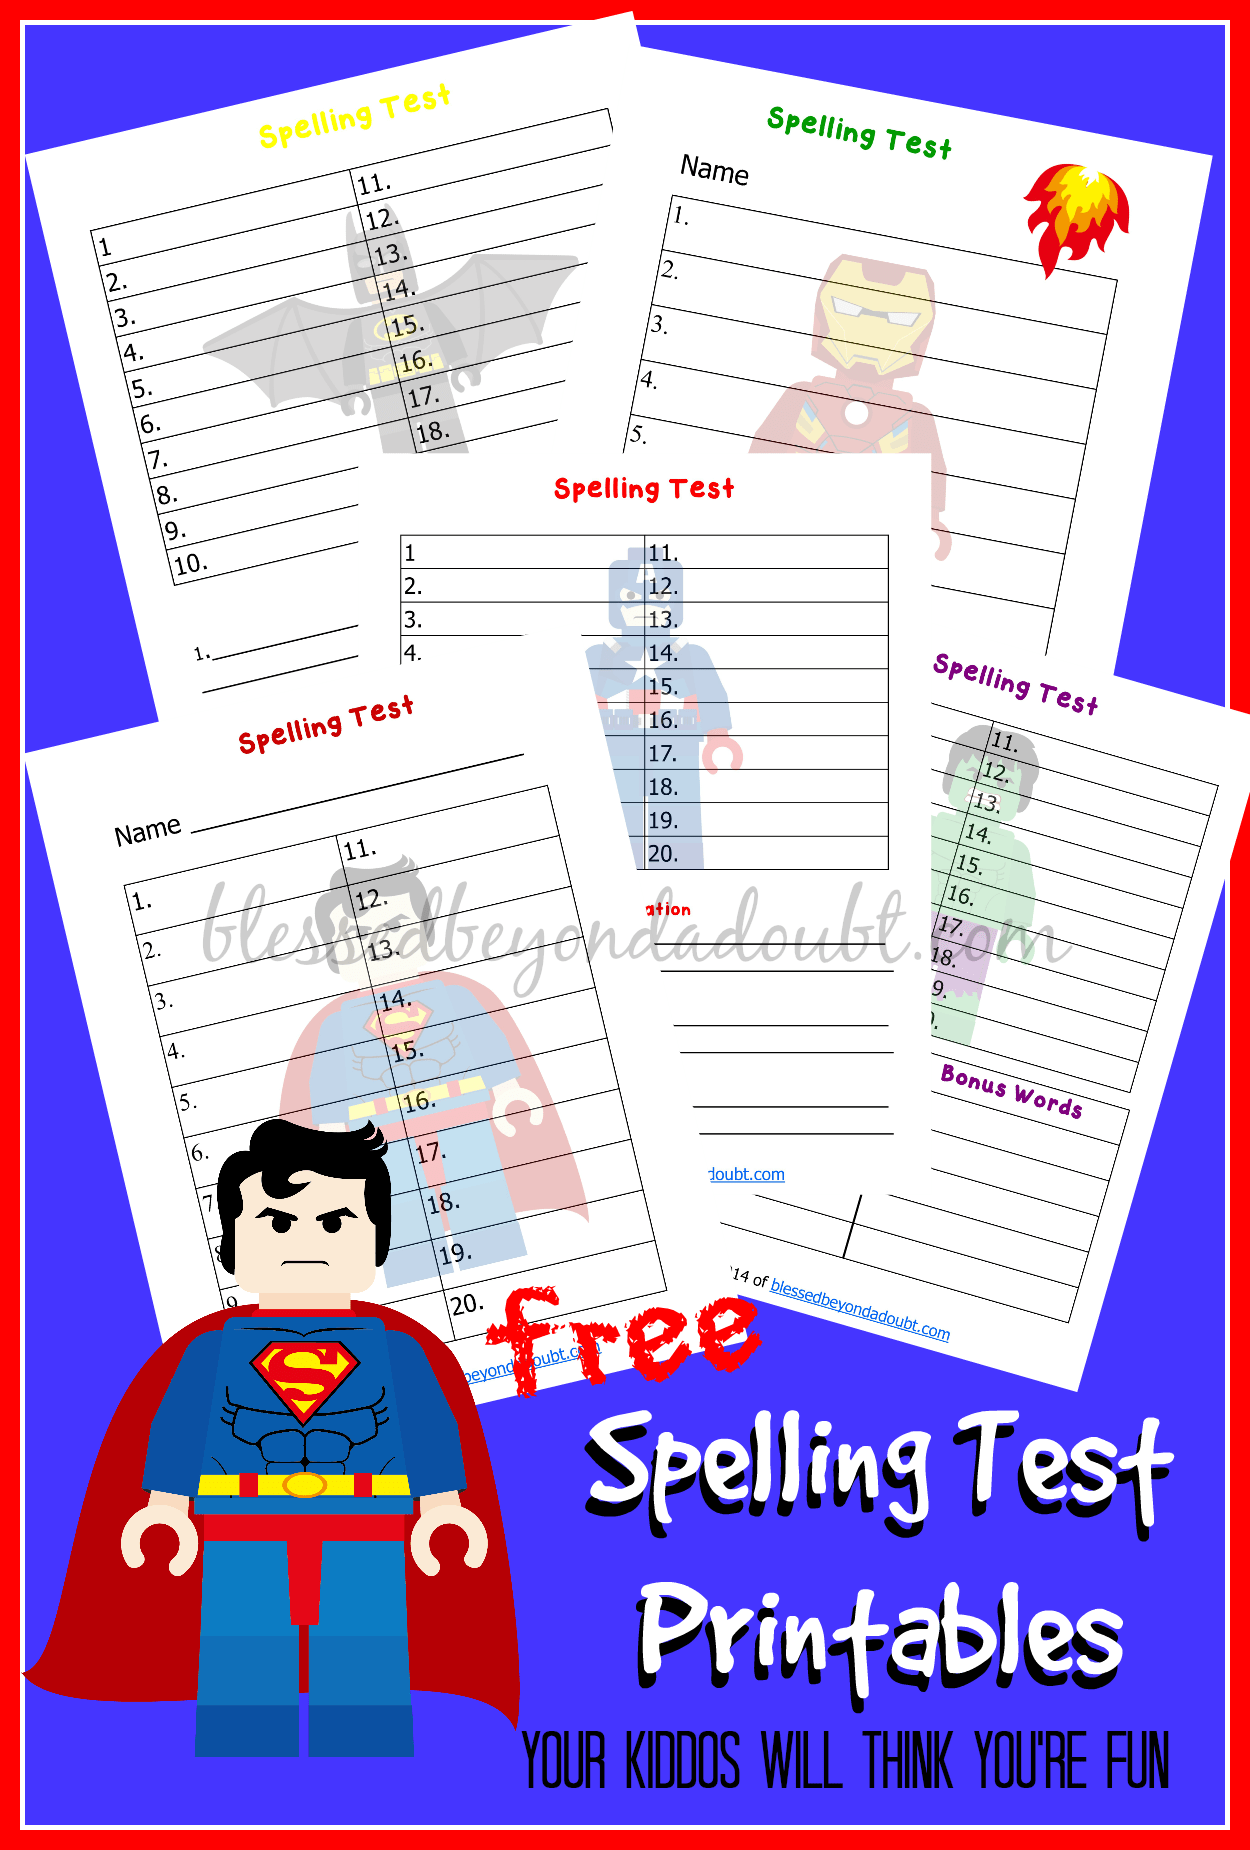 Free Lego Spelling Test Printables